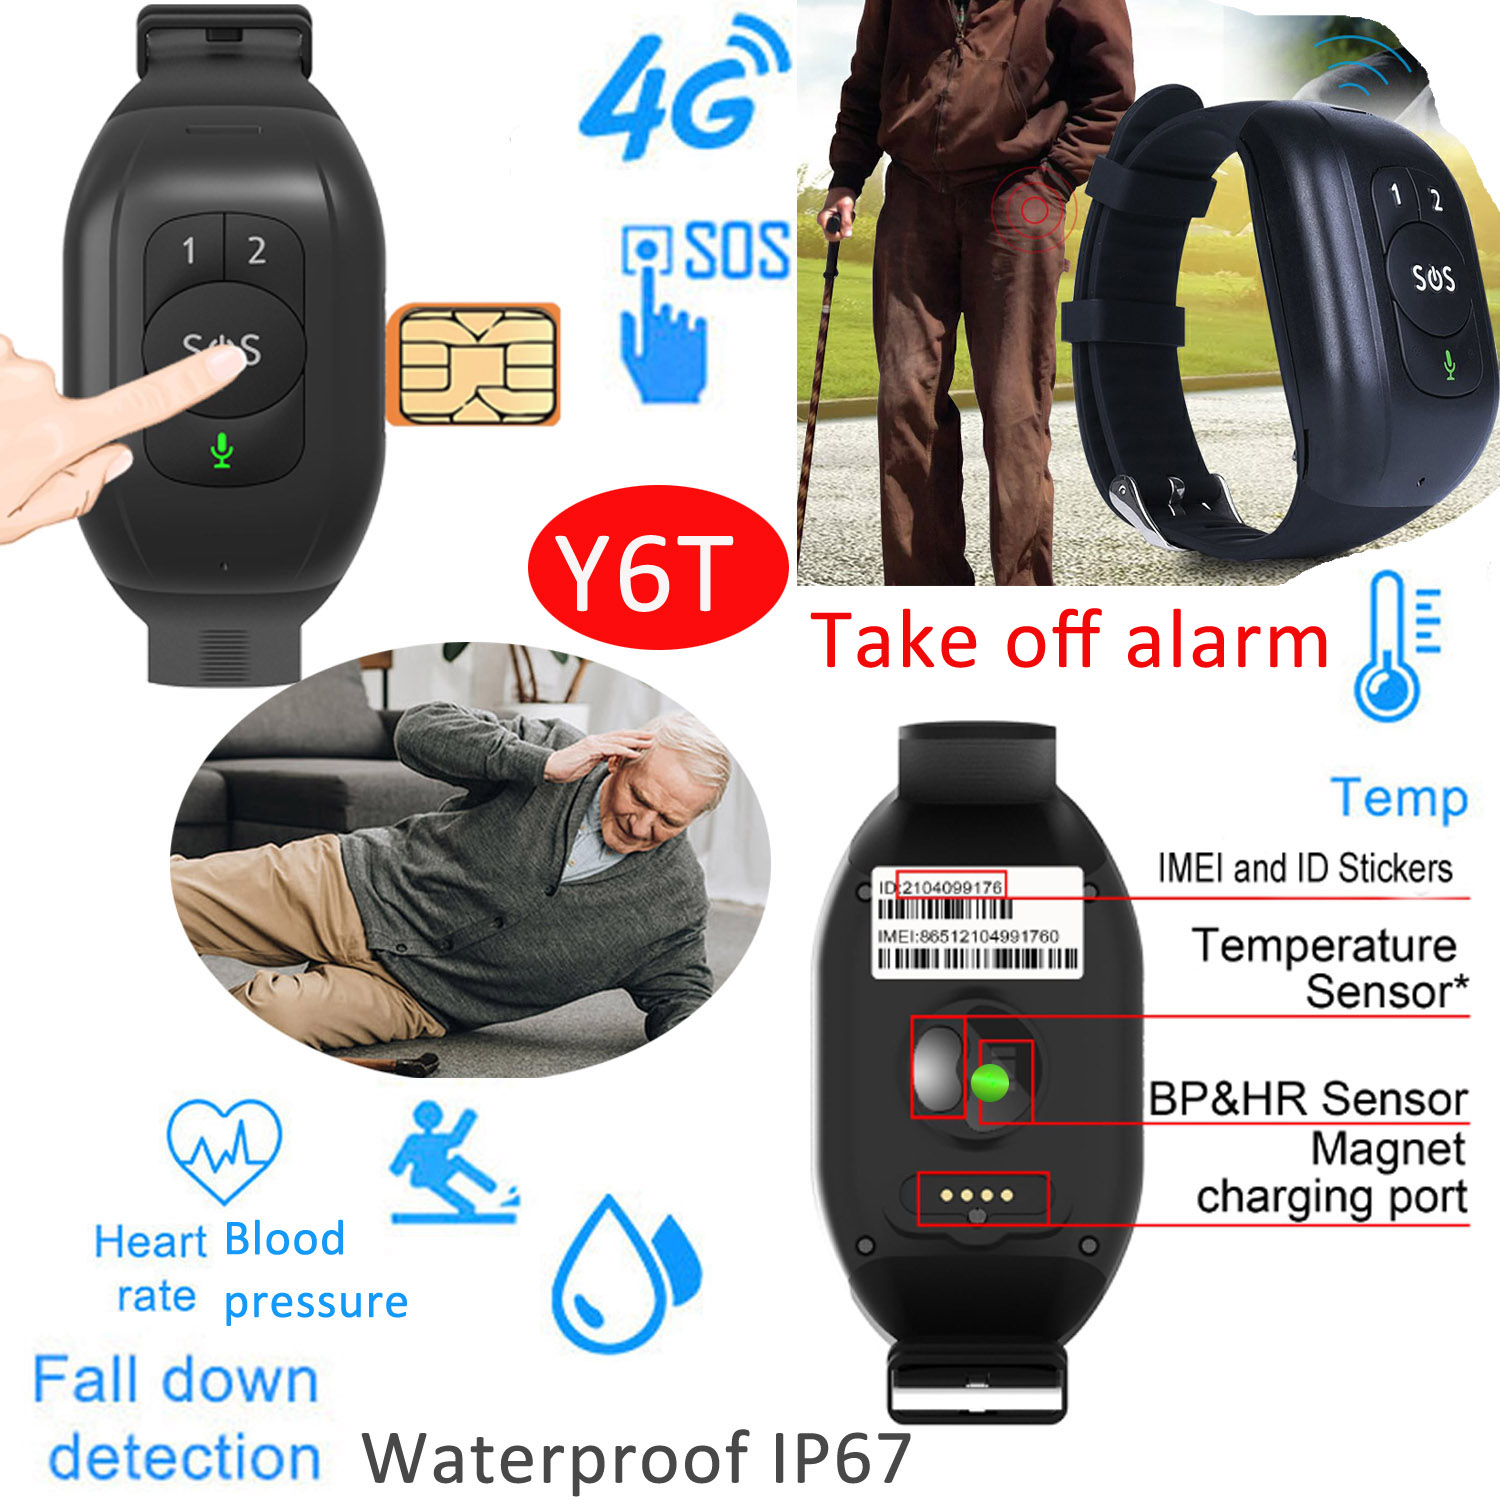 2021 Temperature 4G/LTE Smart GPS Tracker watch with Fall alarm